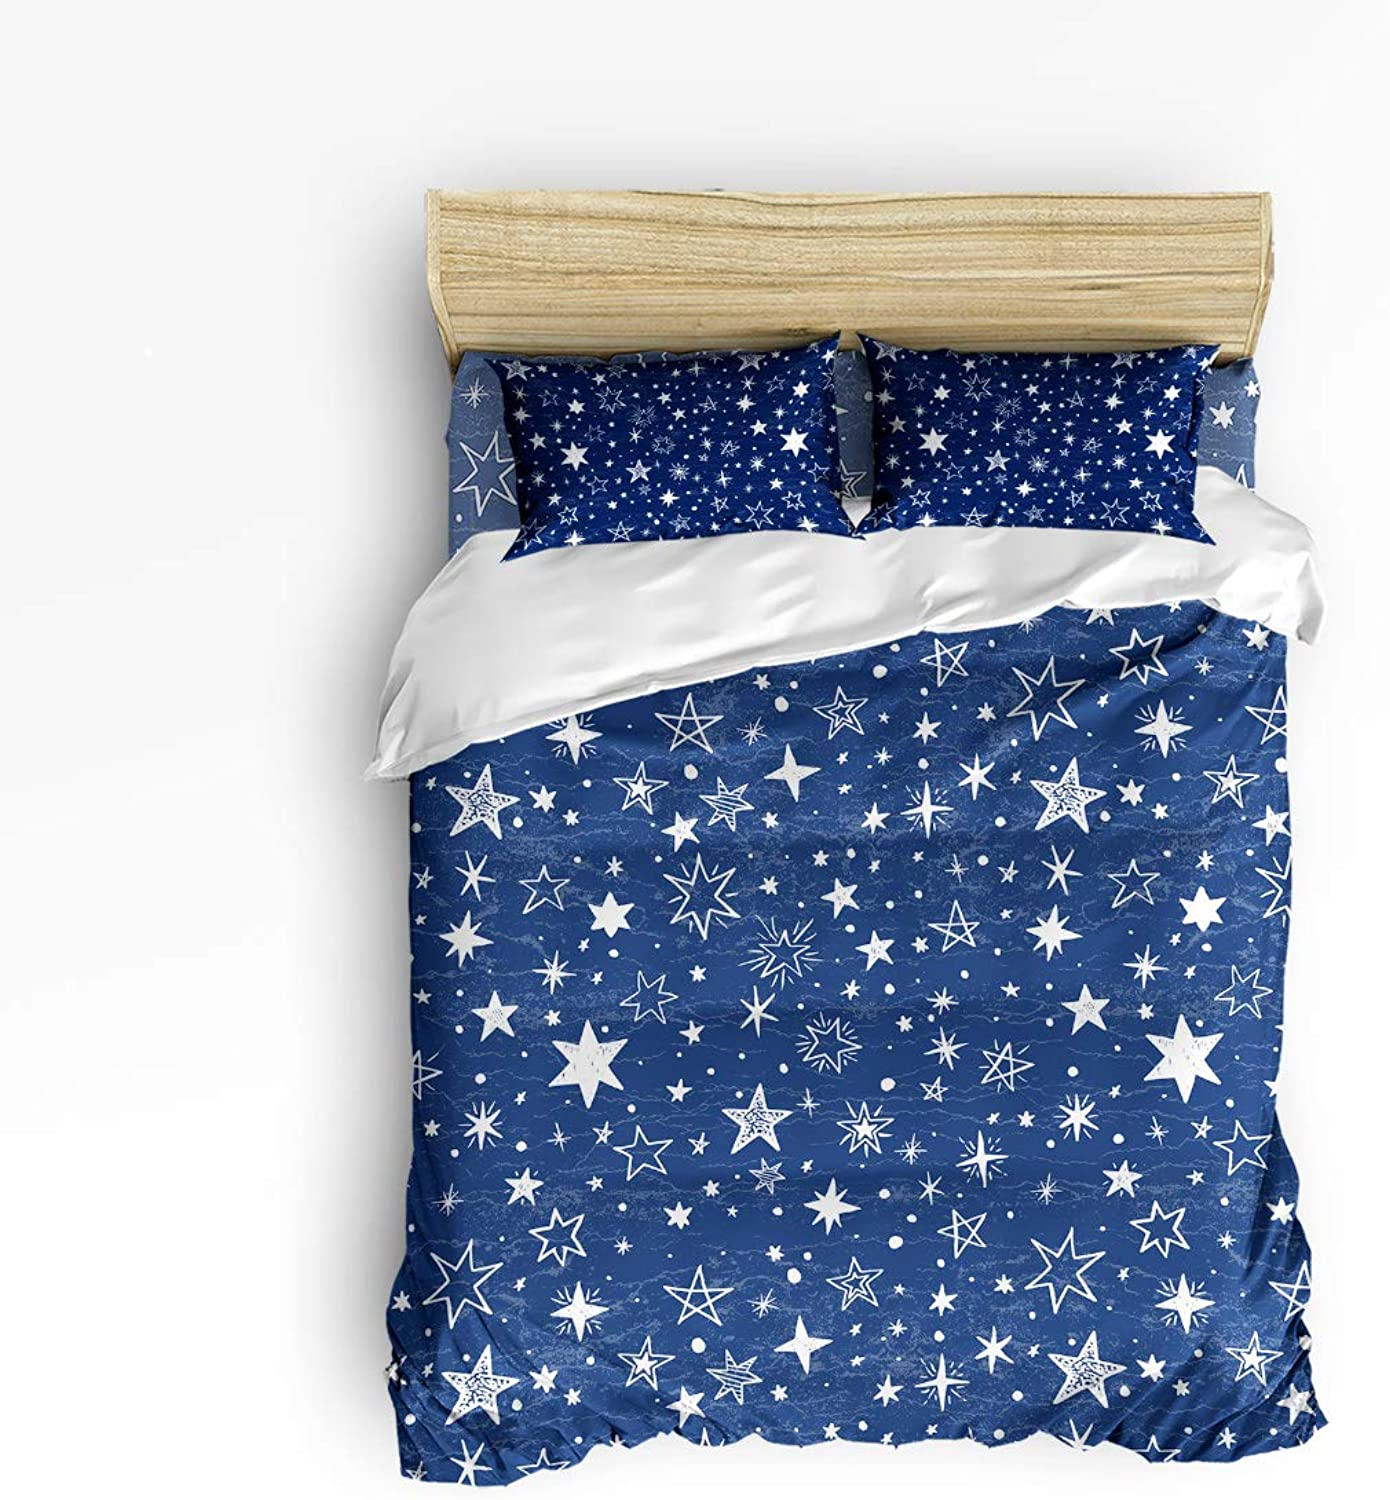 Bedding Set Twin Size HandPainted Star in bluee Background,Comforter Cover Sets for All Season